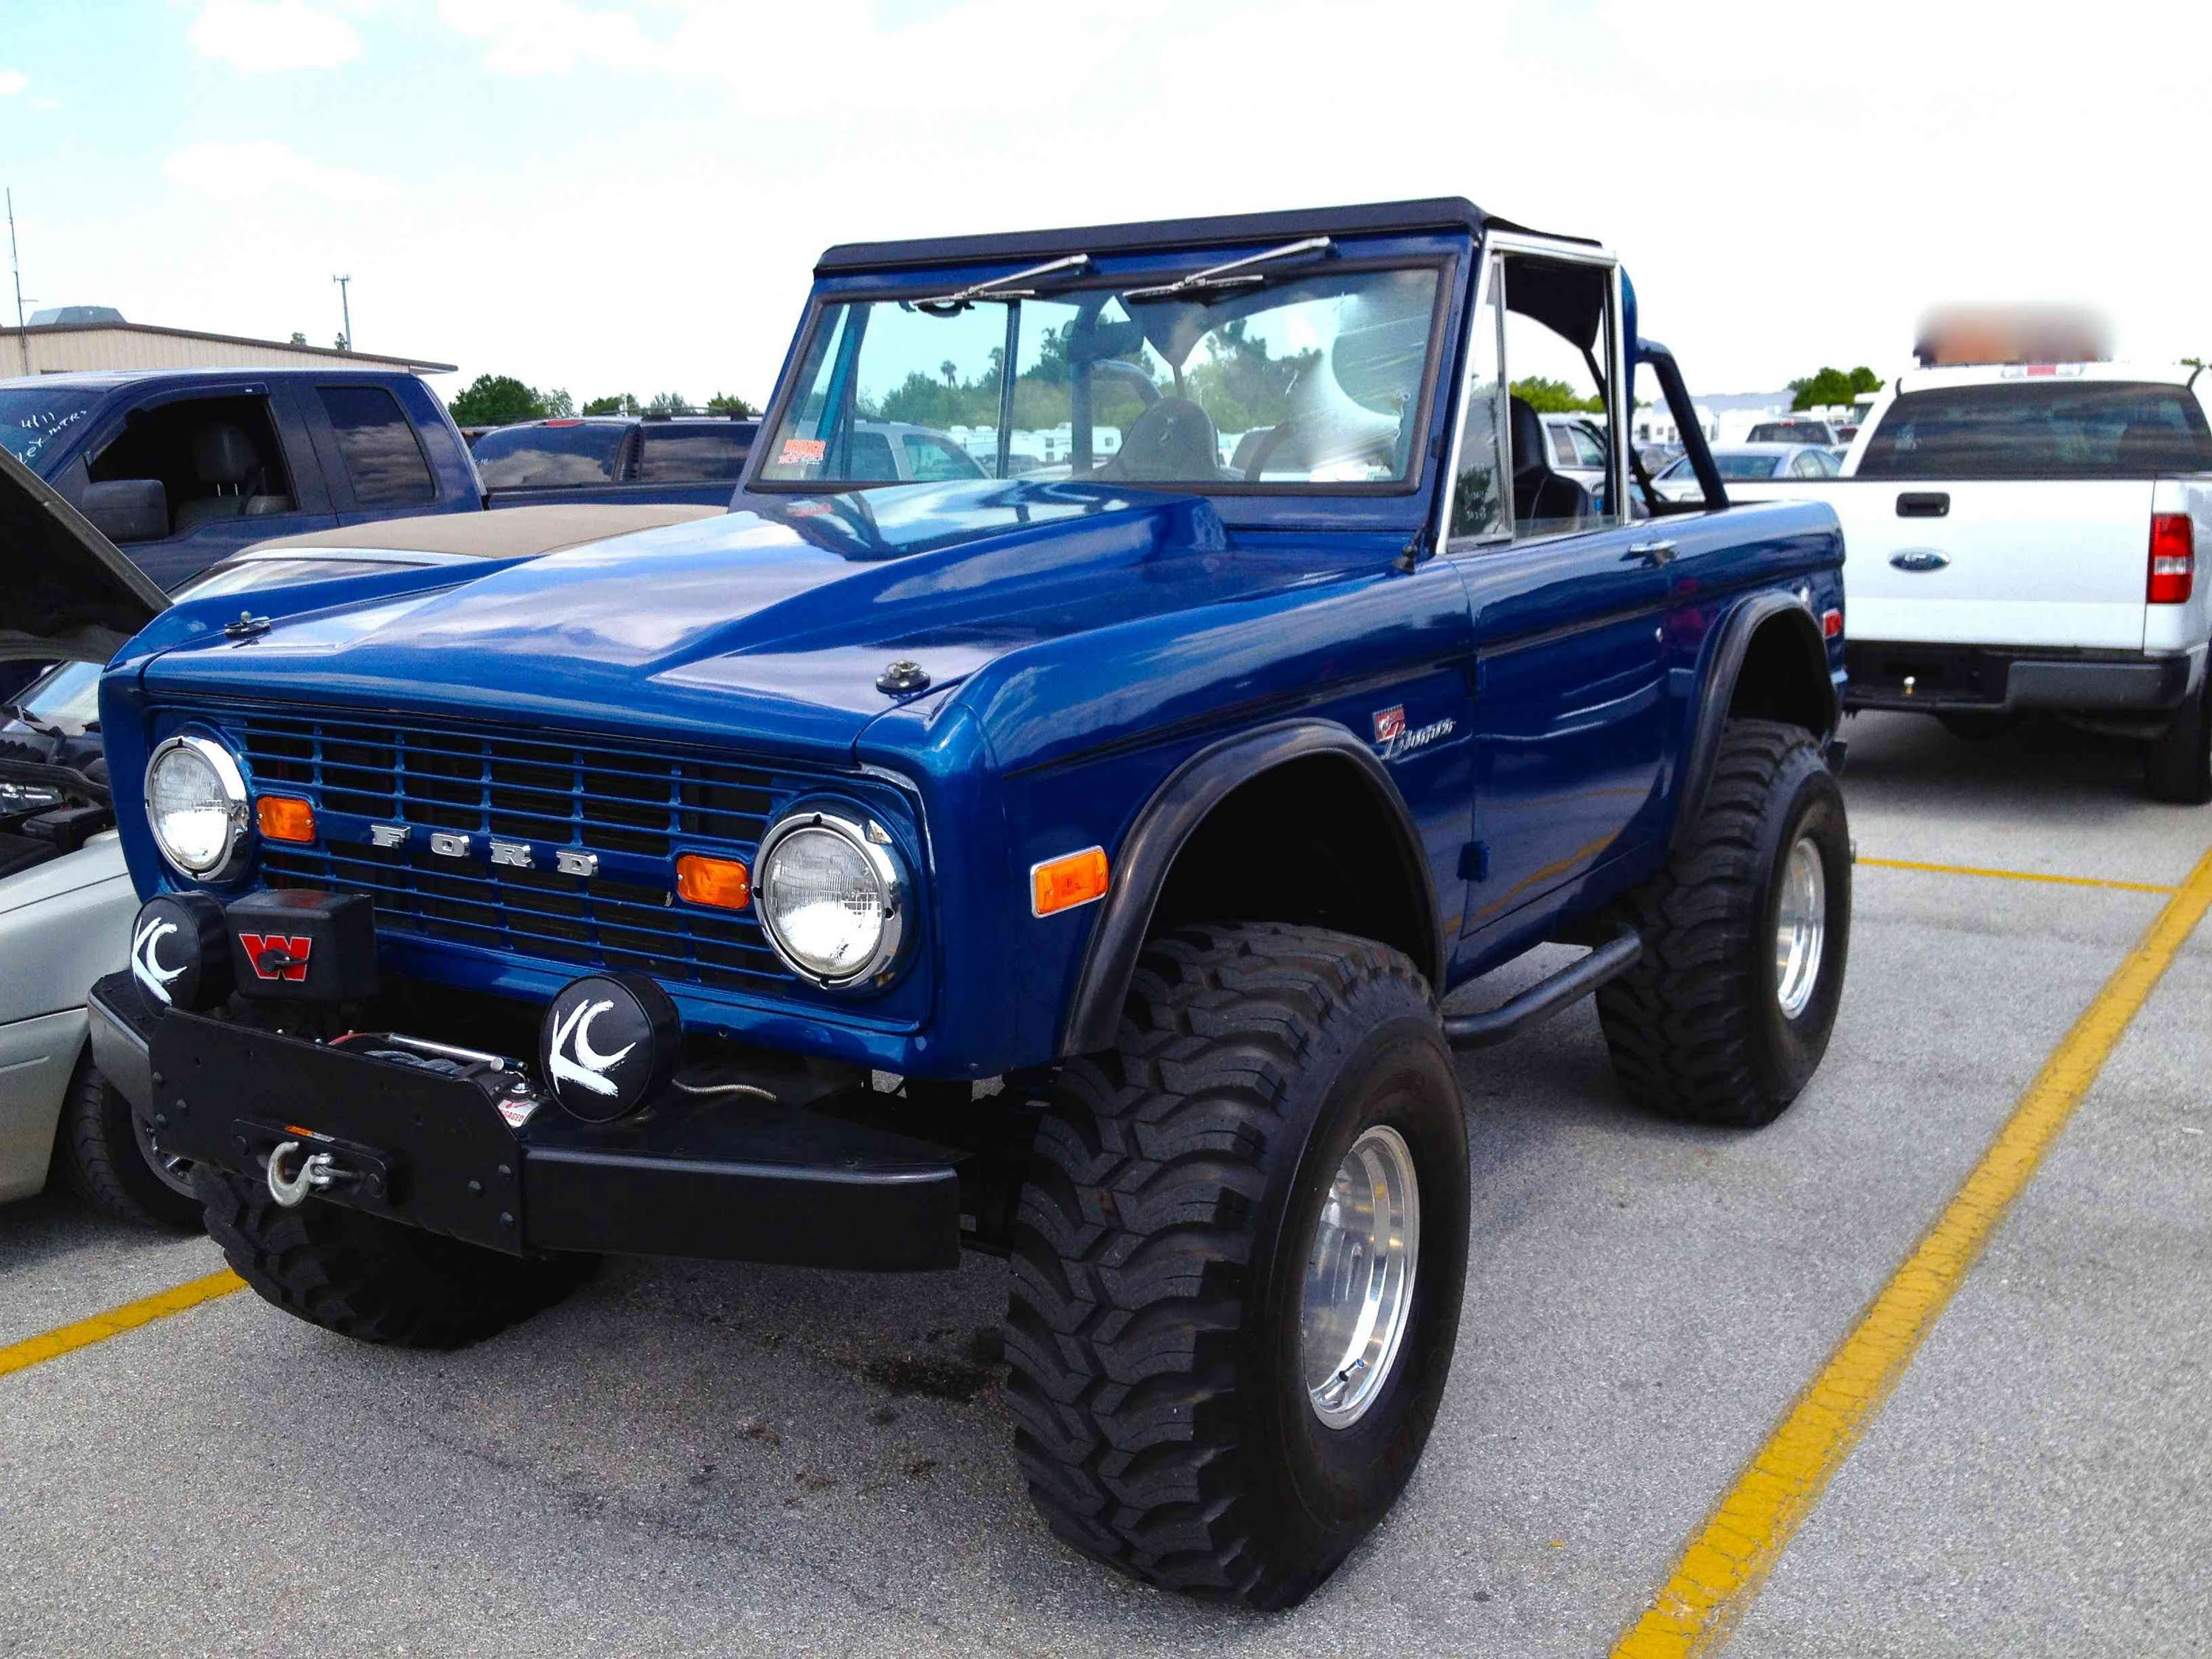 Ford Bronco #14